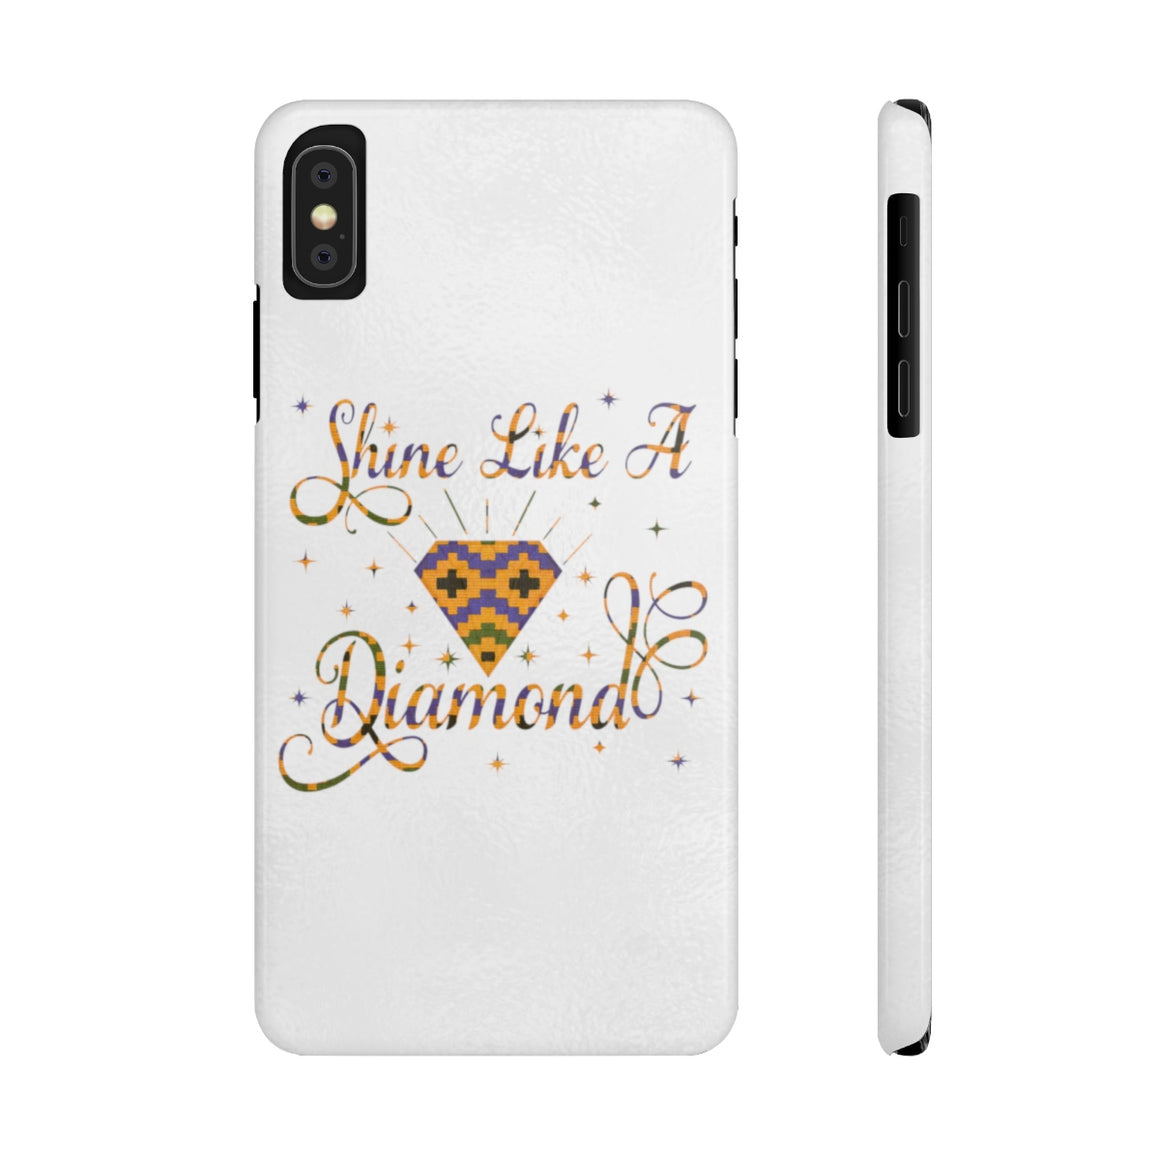 Slim Cell Phone Cases Shine Like A Diamond